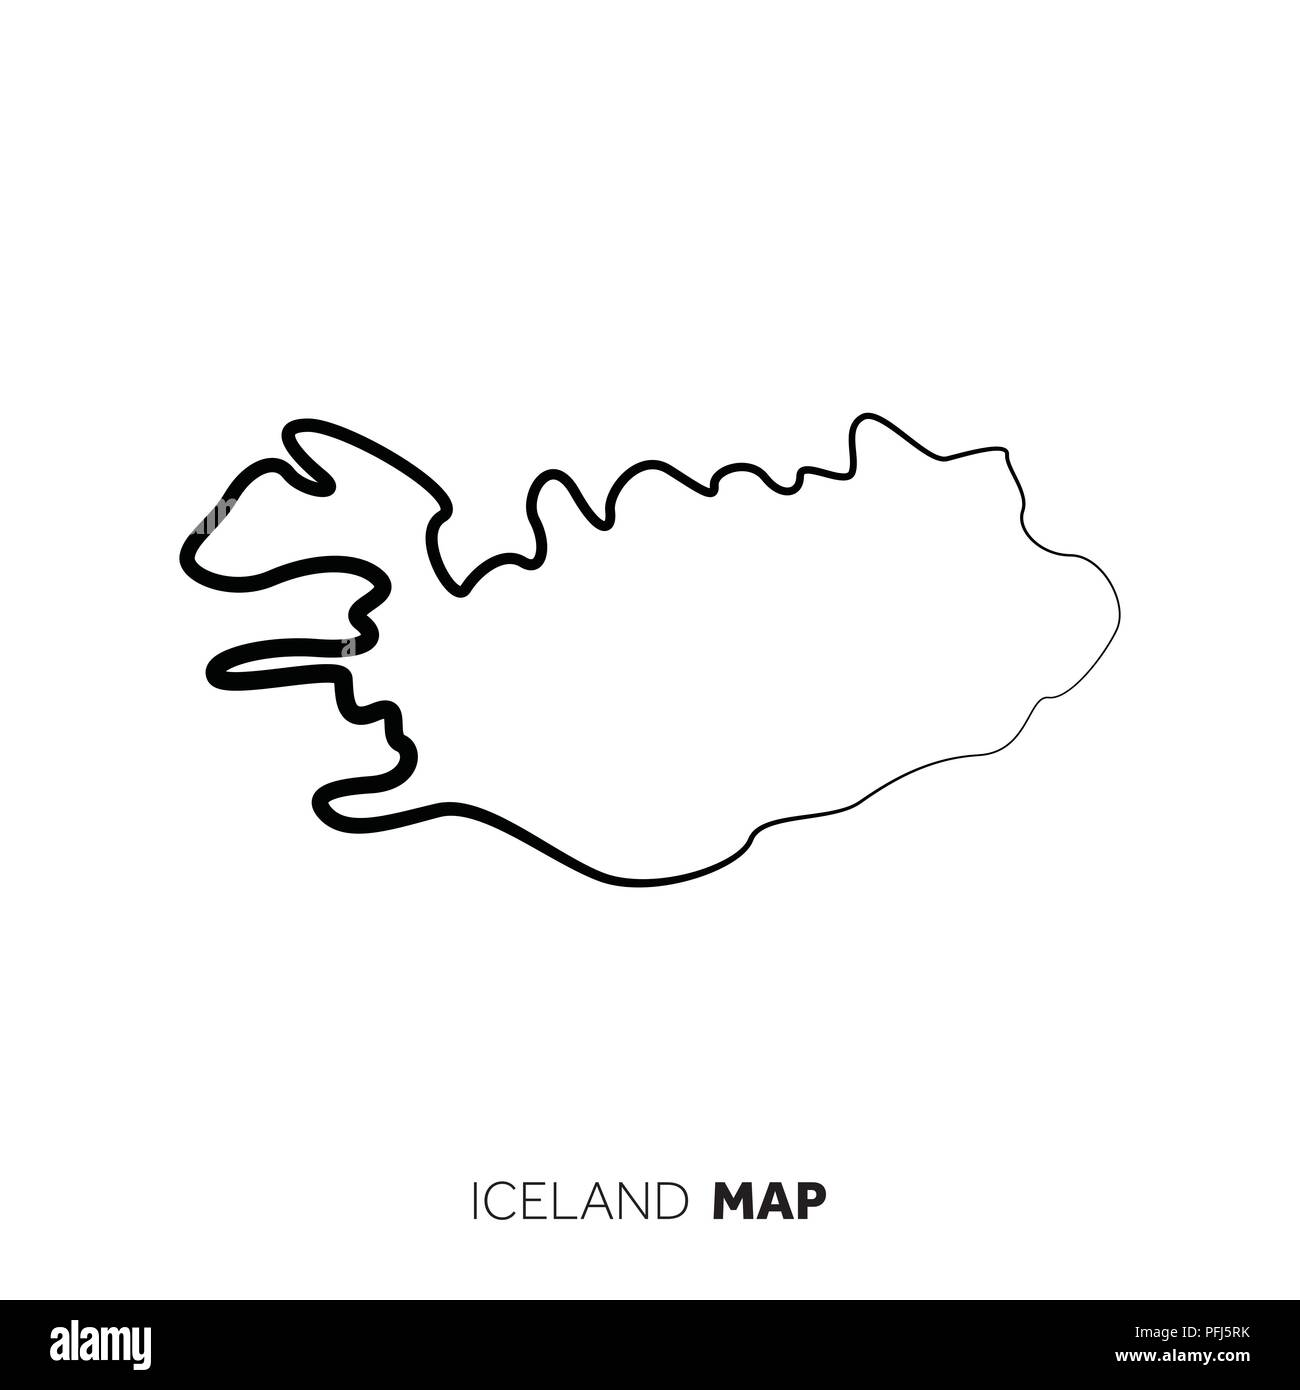 Iceland vector country map outline. Black line on white background ...